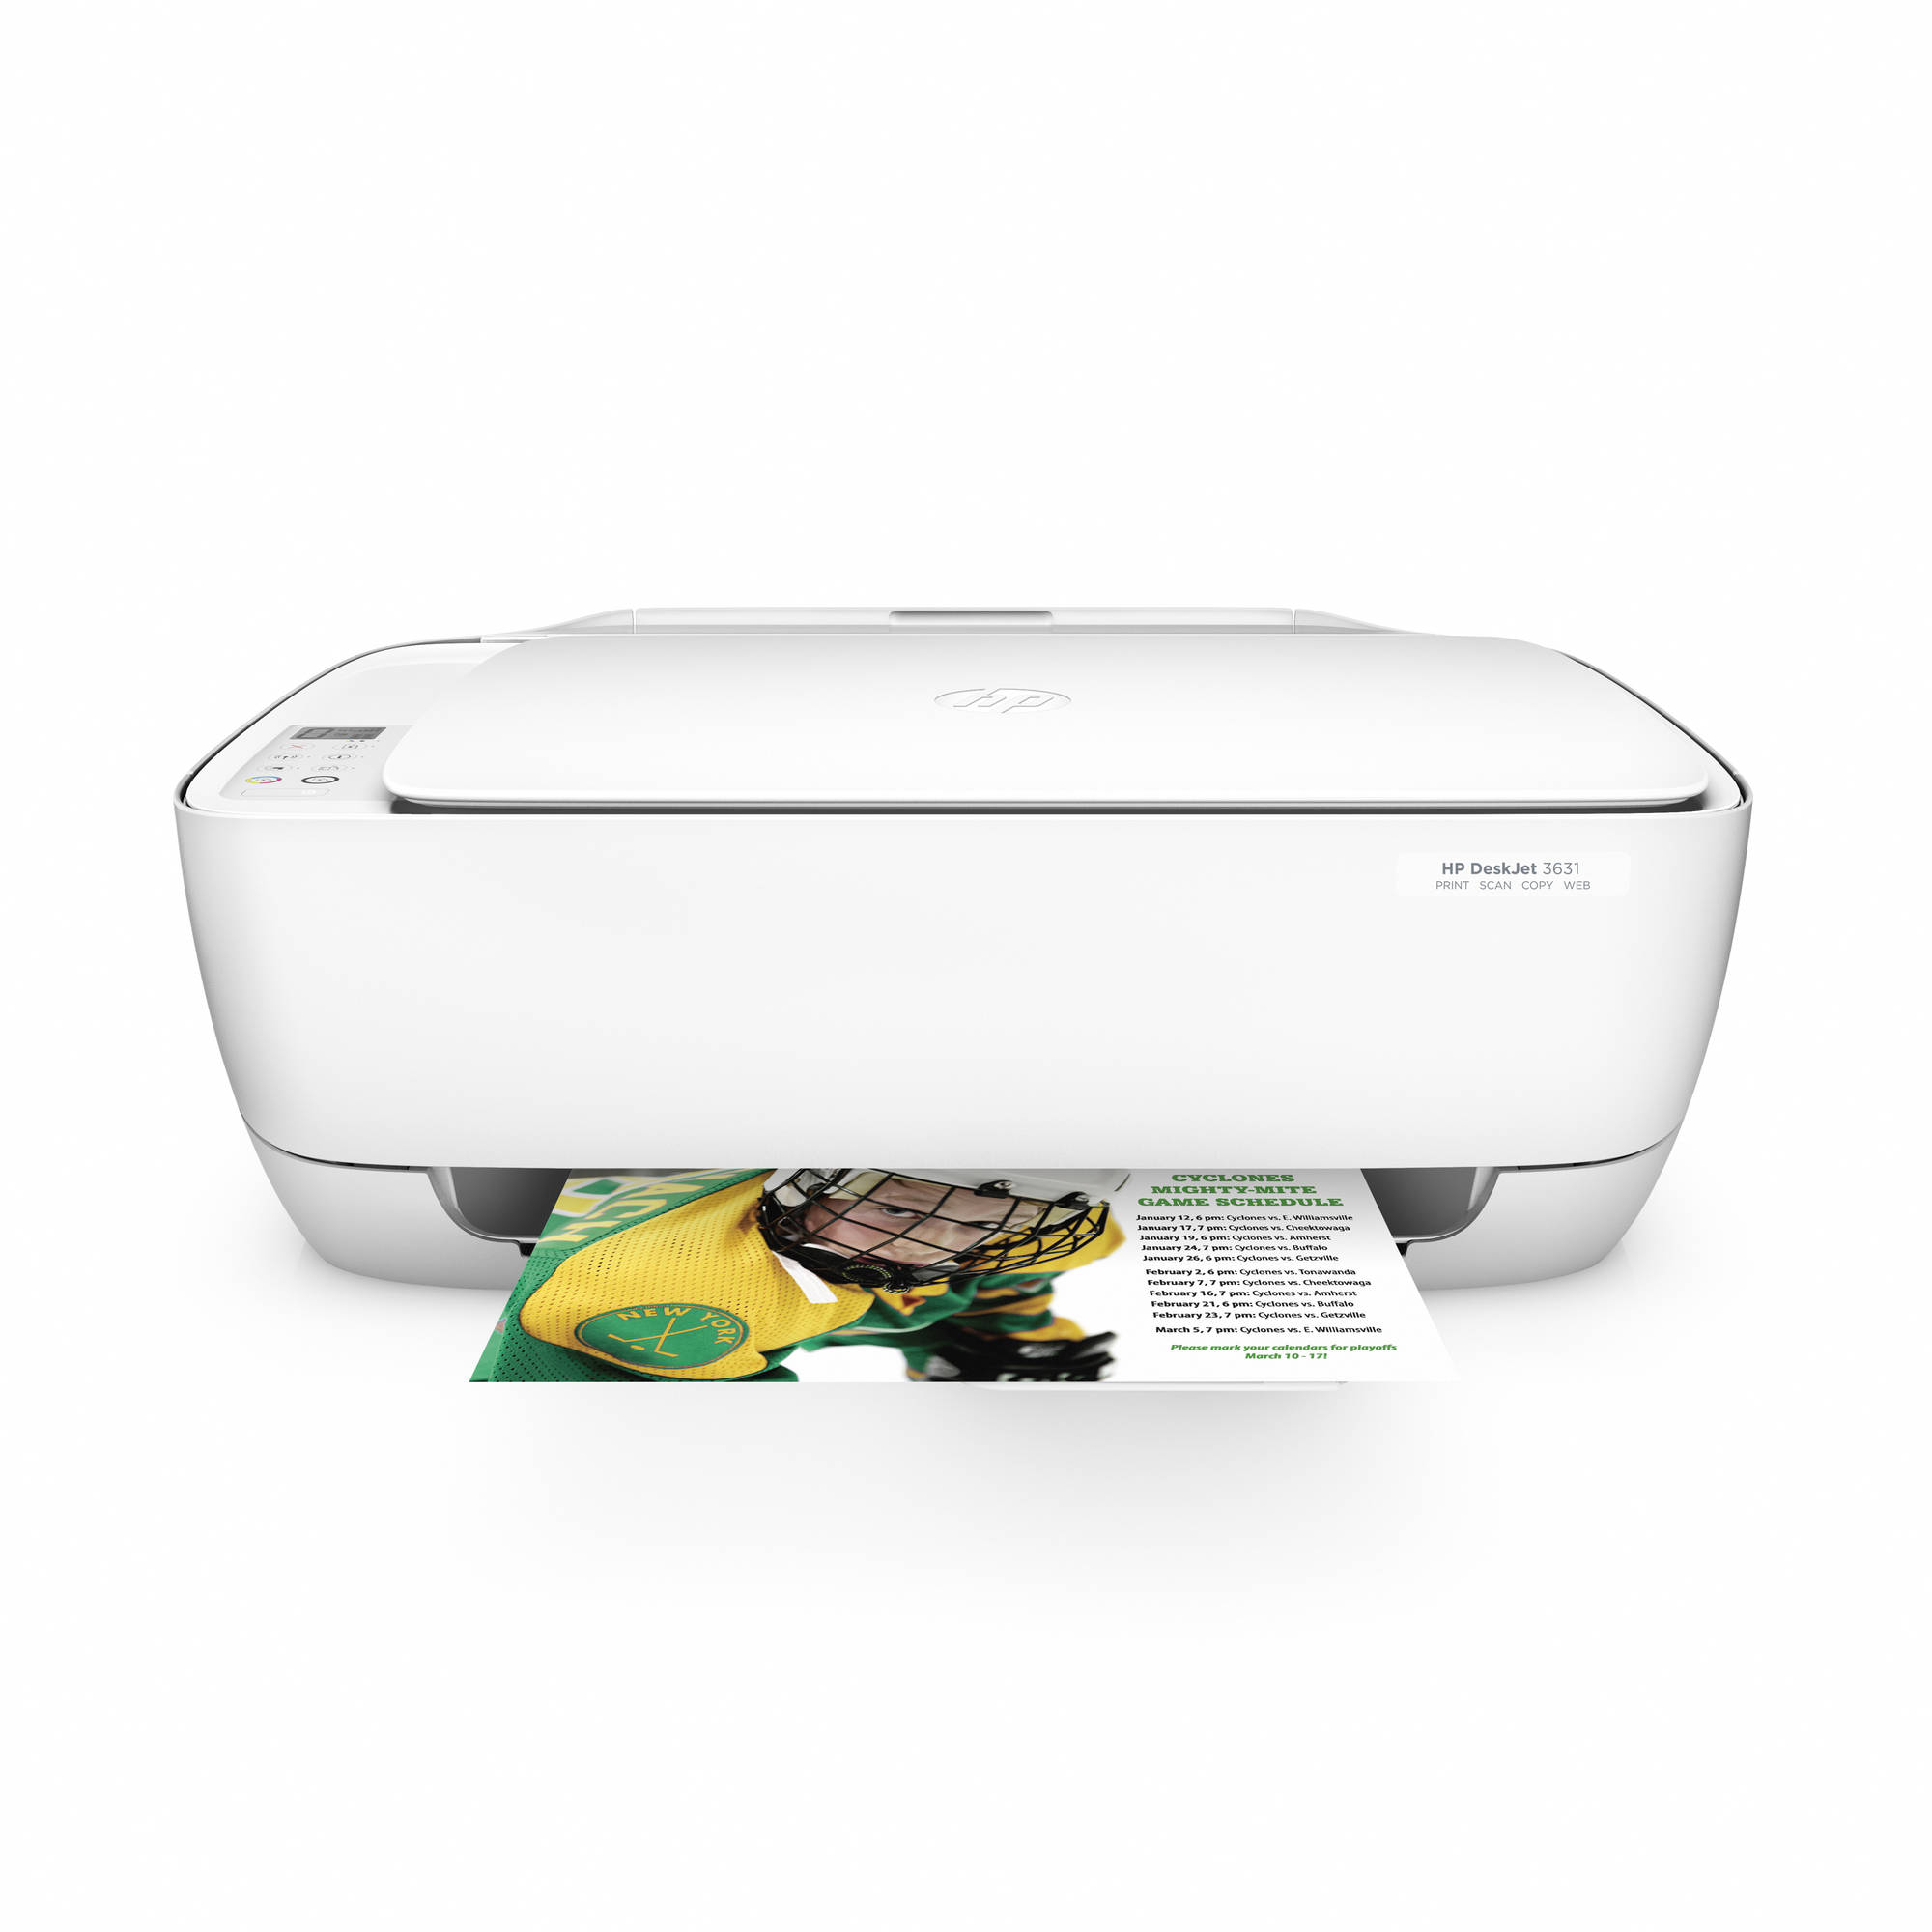 HP DeskJet 3631 All-in-One Compact Printer with Wireless Printing (K4T94A)